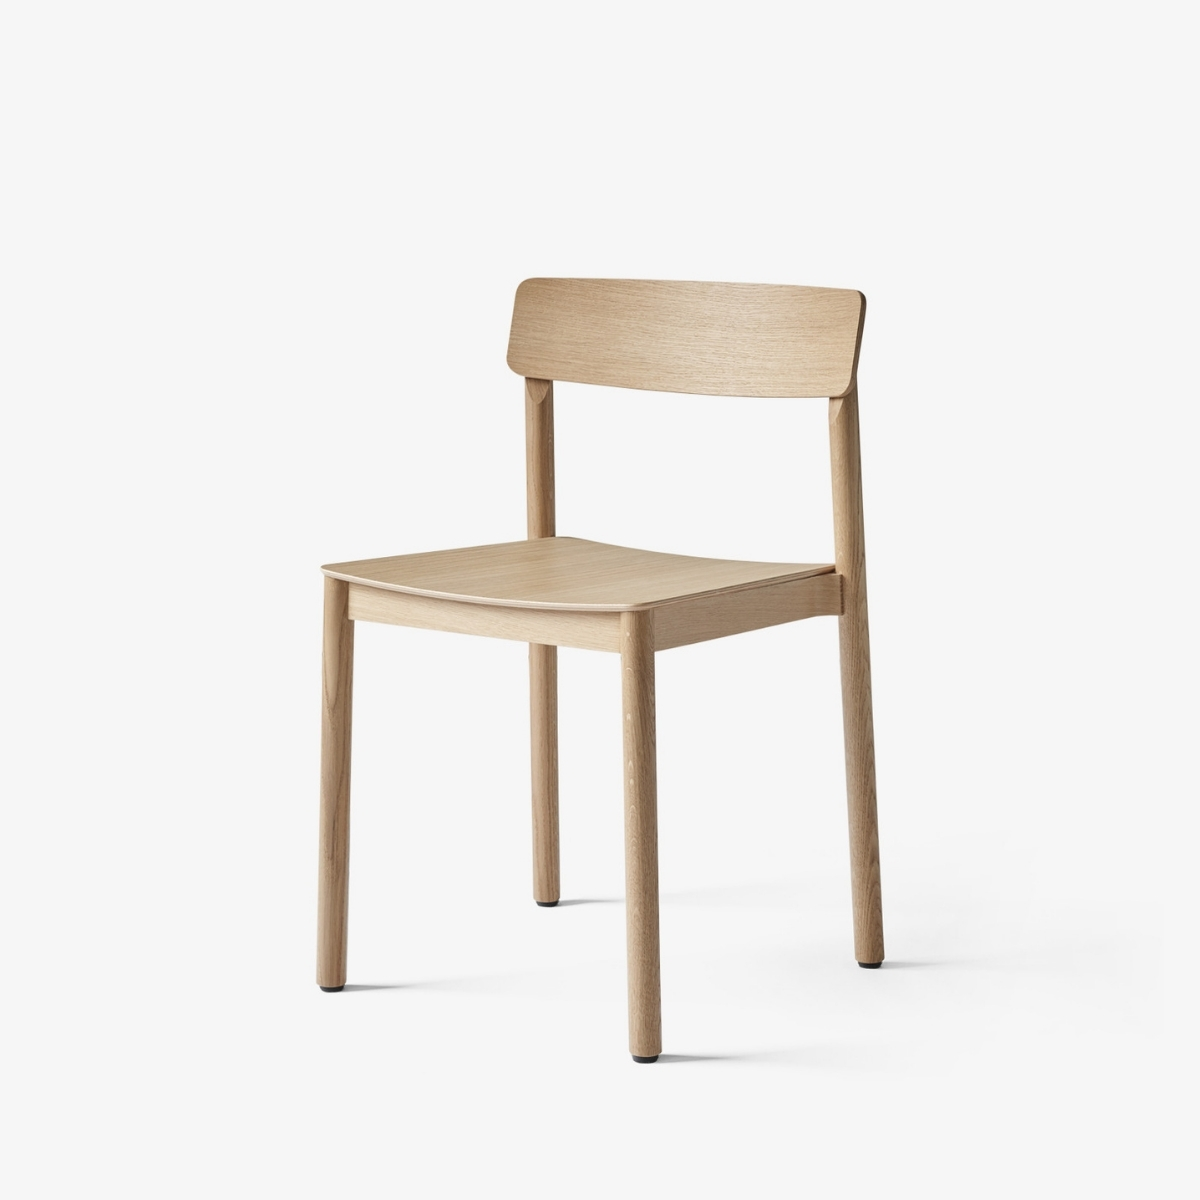 &Tradition   Betty TK2 chair